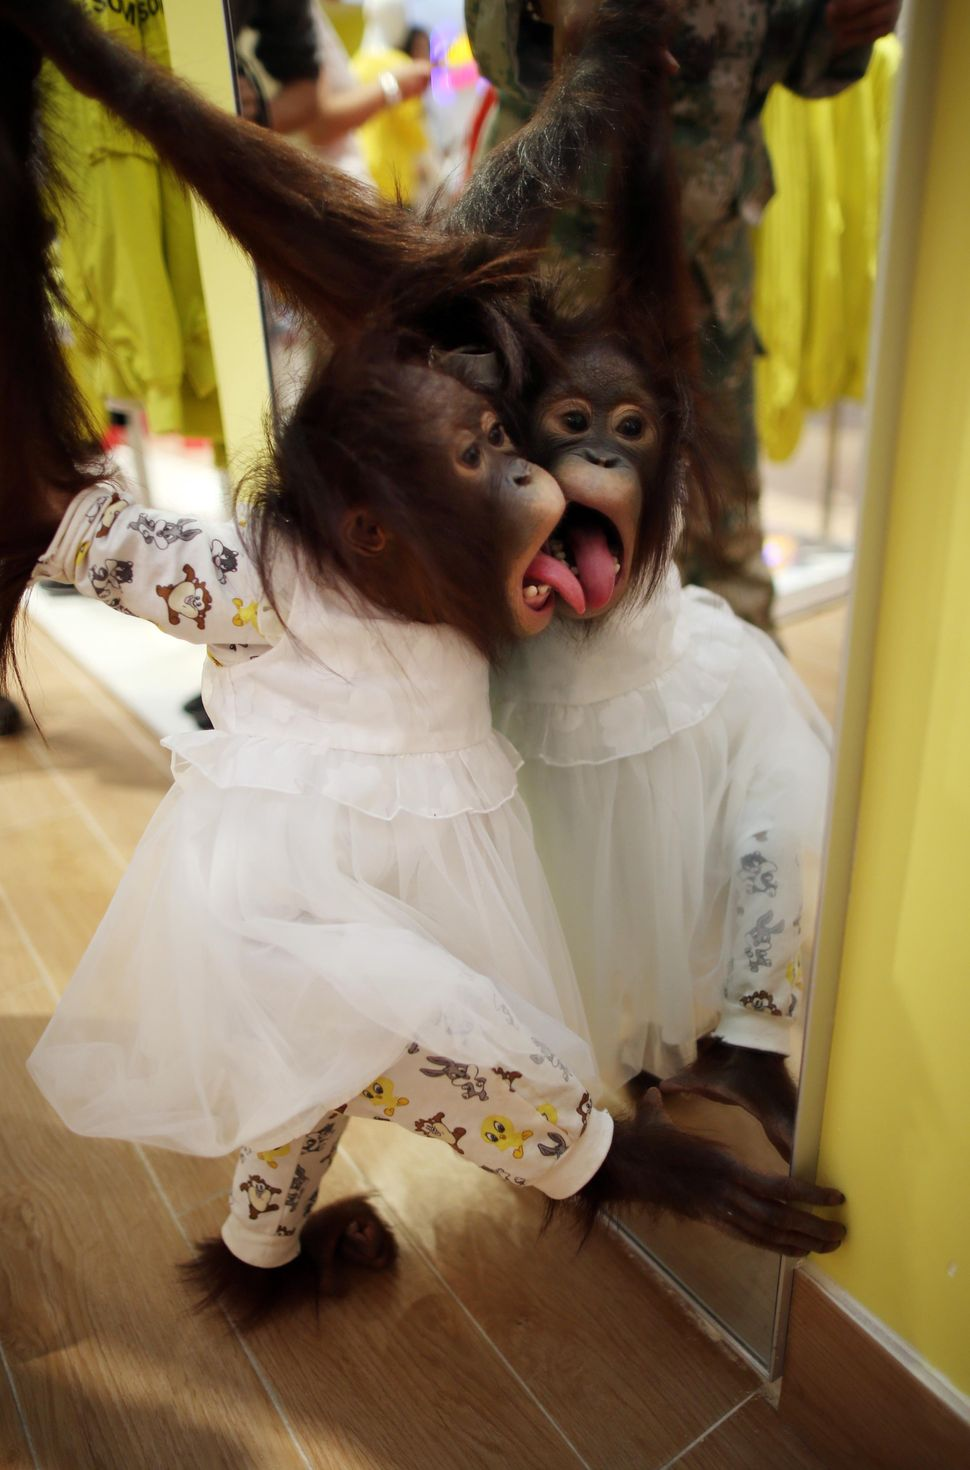 Famous red-haired orangutan Er Mao of Yunnan Wild Animals Park wearing a skirt licks the mirror at a shopping mall in Kunming